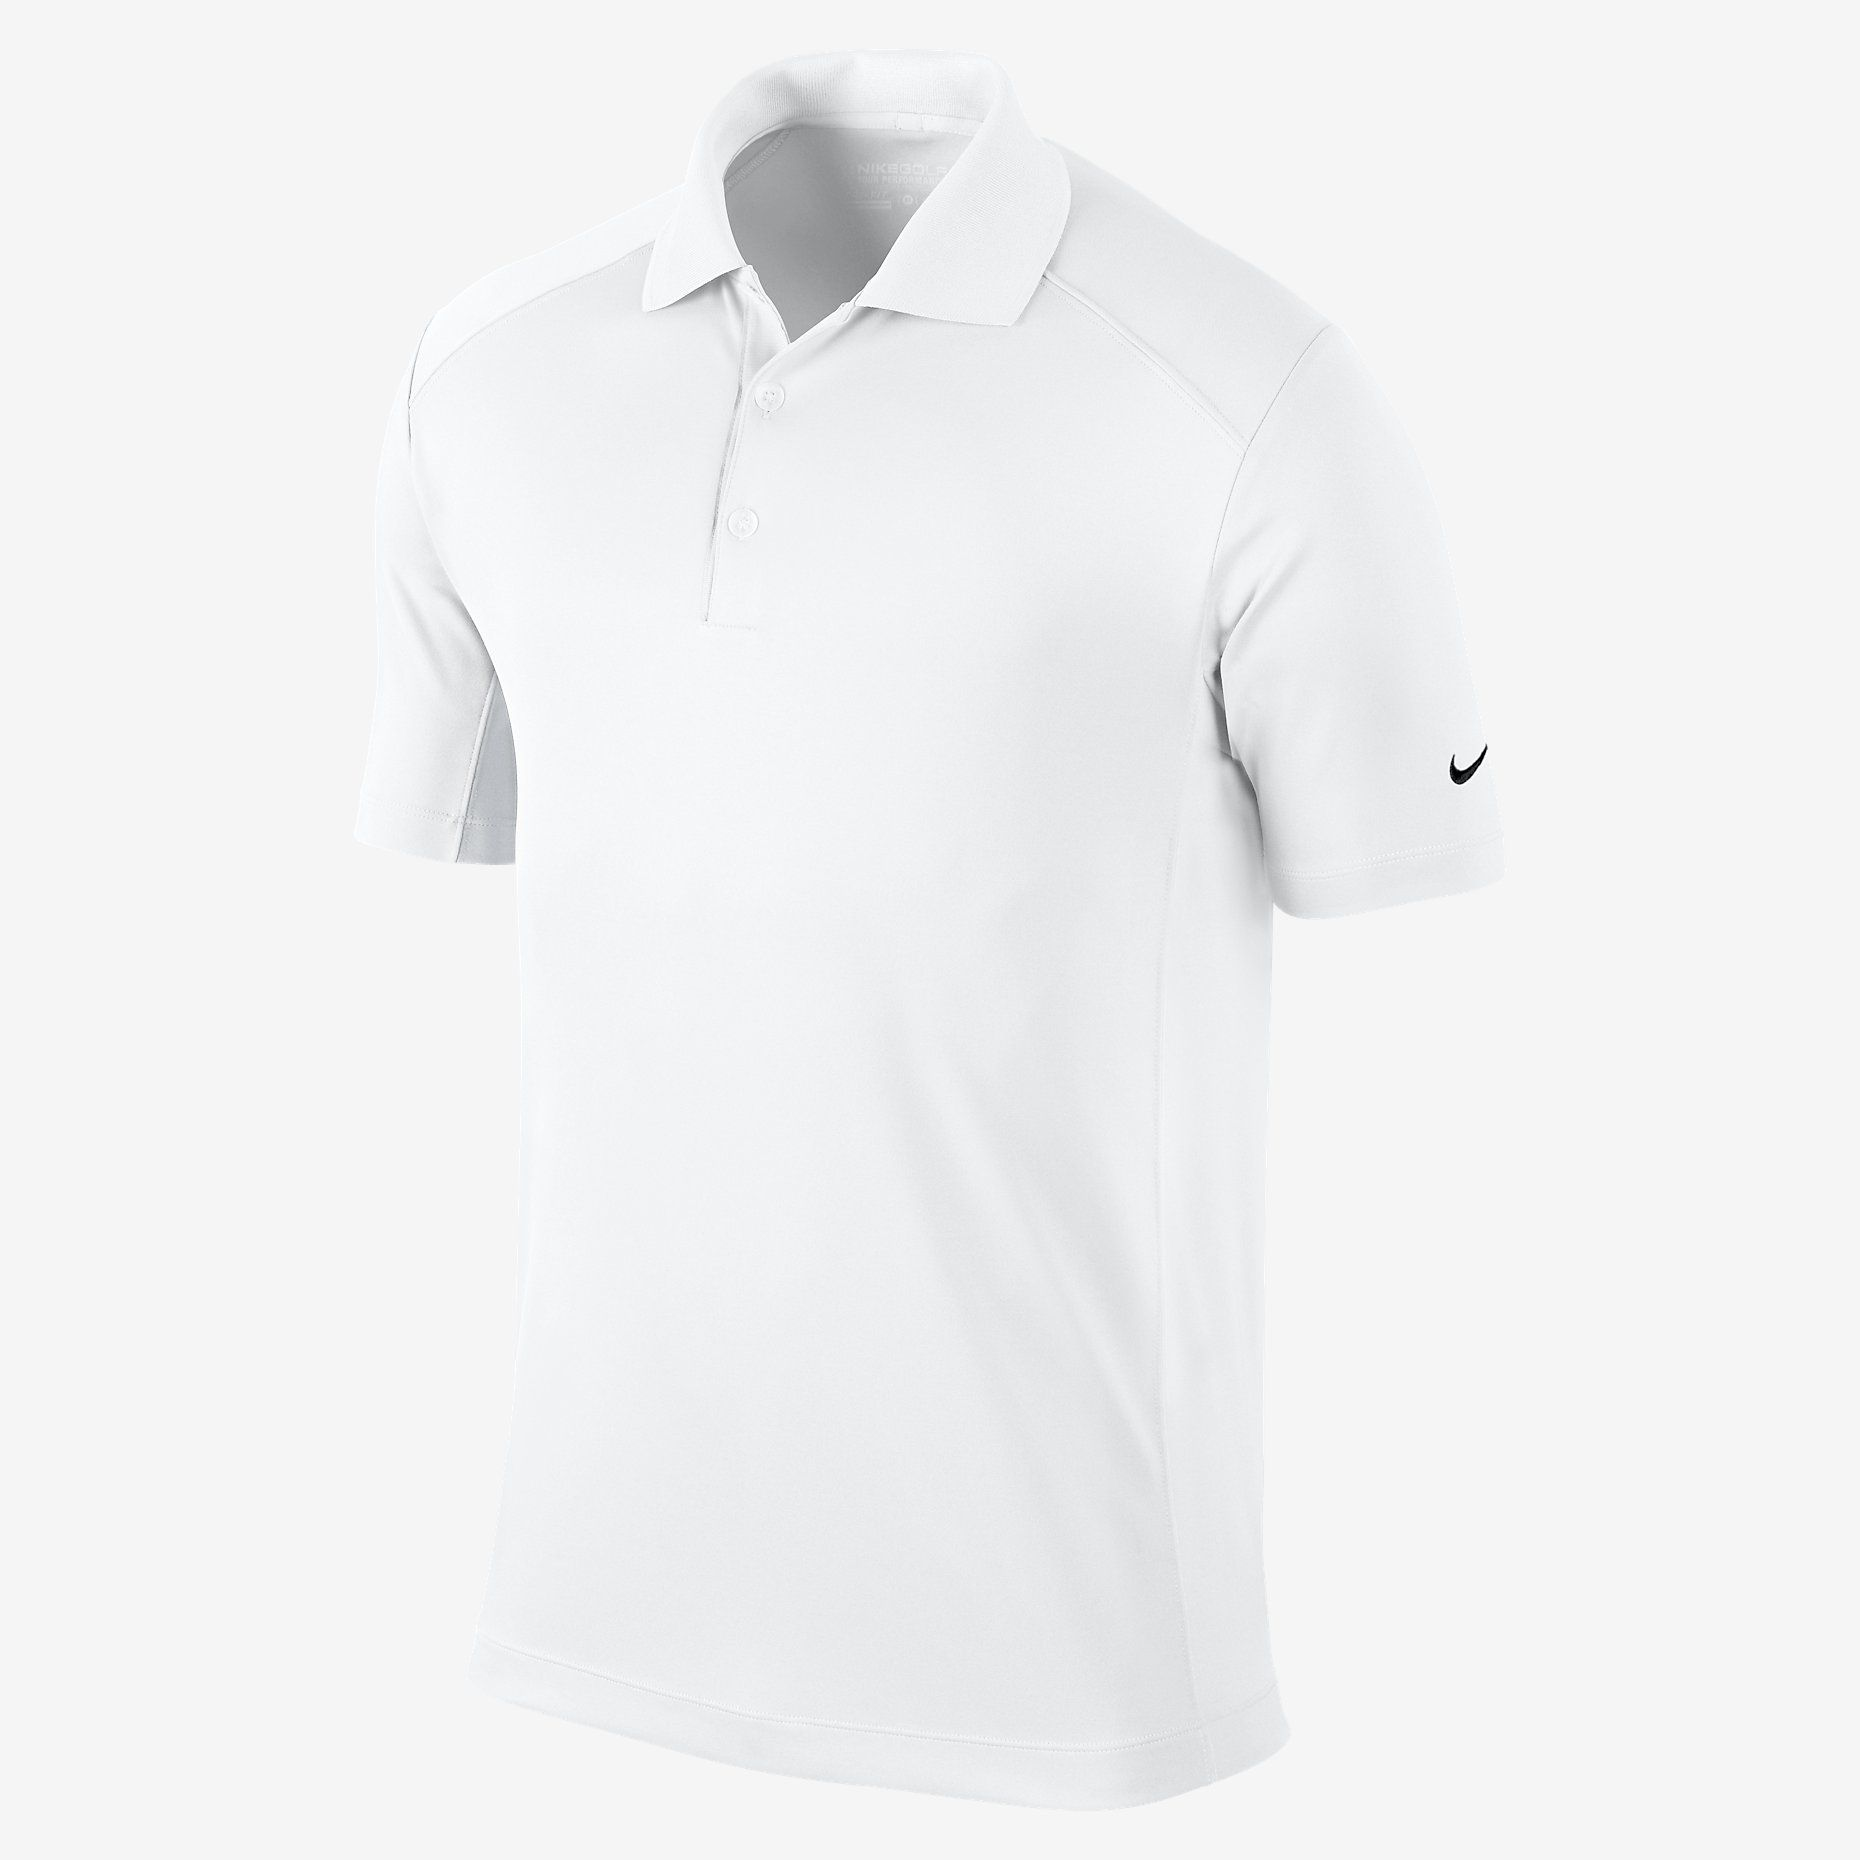 f5d36d0f Nike Power Uv Mens Tennis Polo Shirt – EDGE Engineering and ...